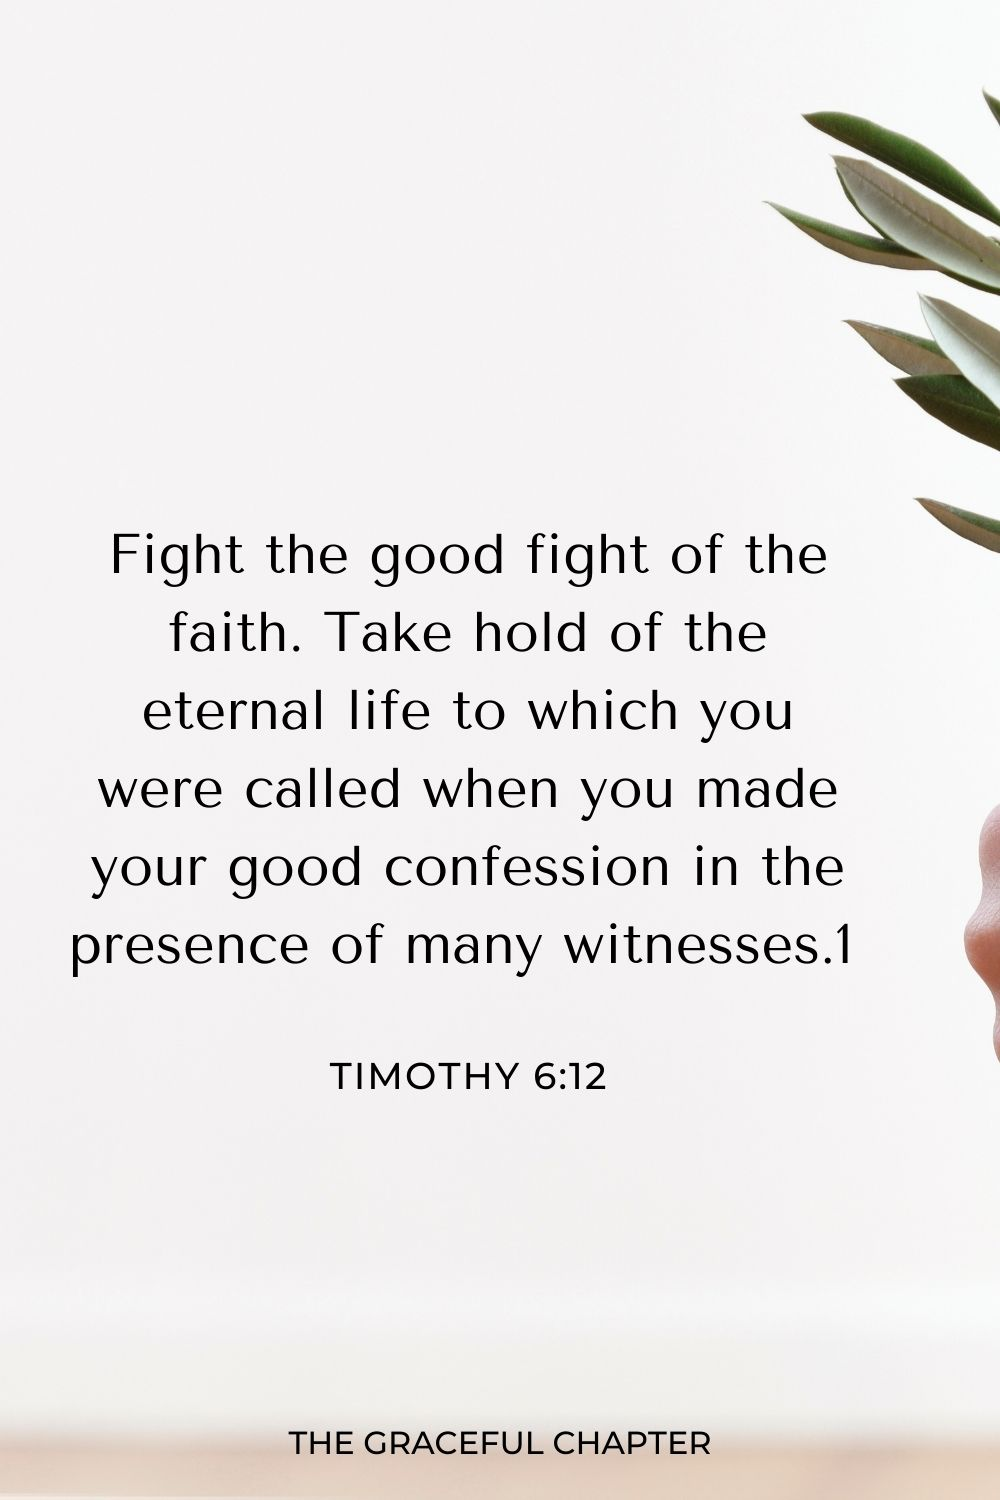 Fight the good fight of the faith. Take hold of the eternal life to which you were called when you made your good confession in the presence of many witnesses. 1 Timothy 6:12